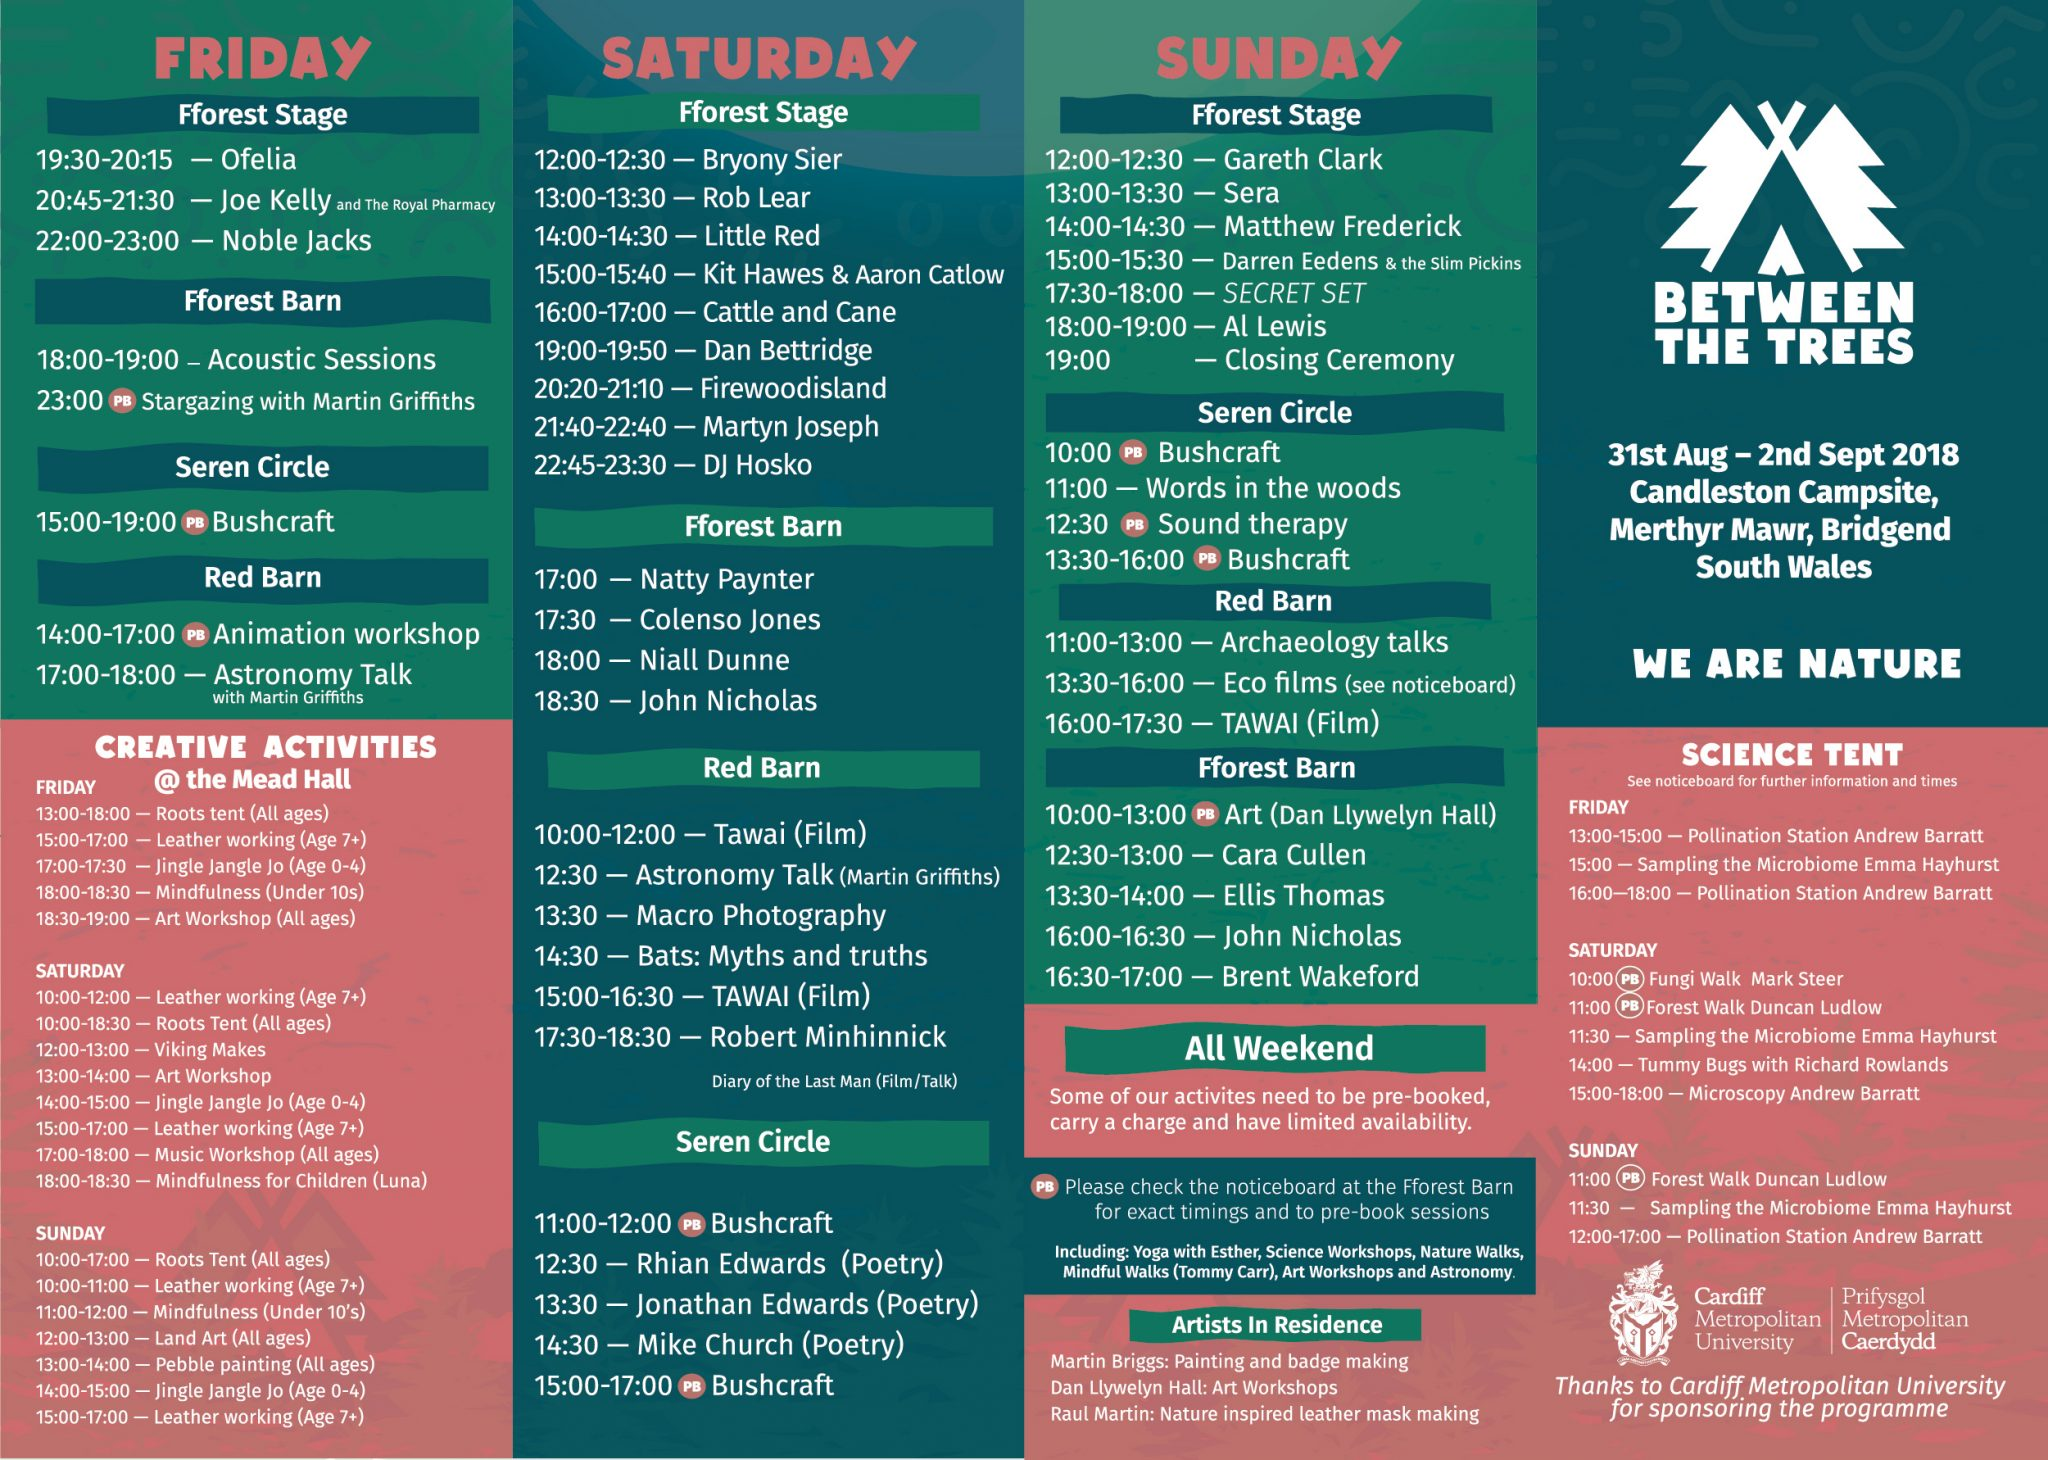 Between The Trees 2018 festival programme and lineup